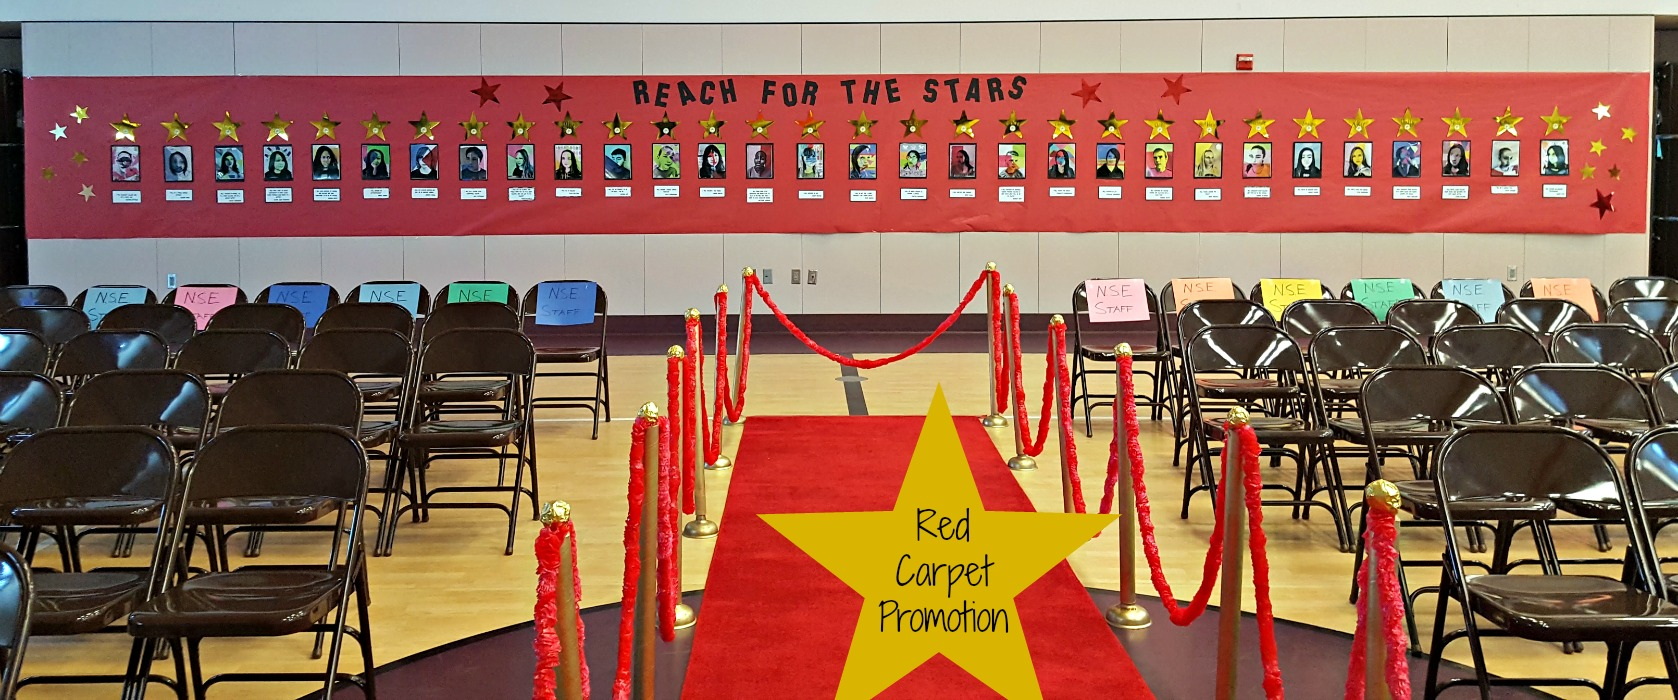 red carpet ceremony